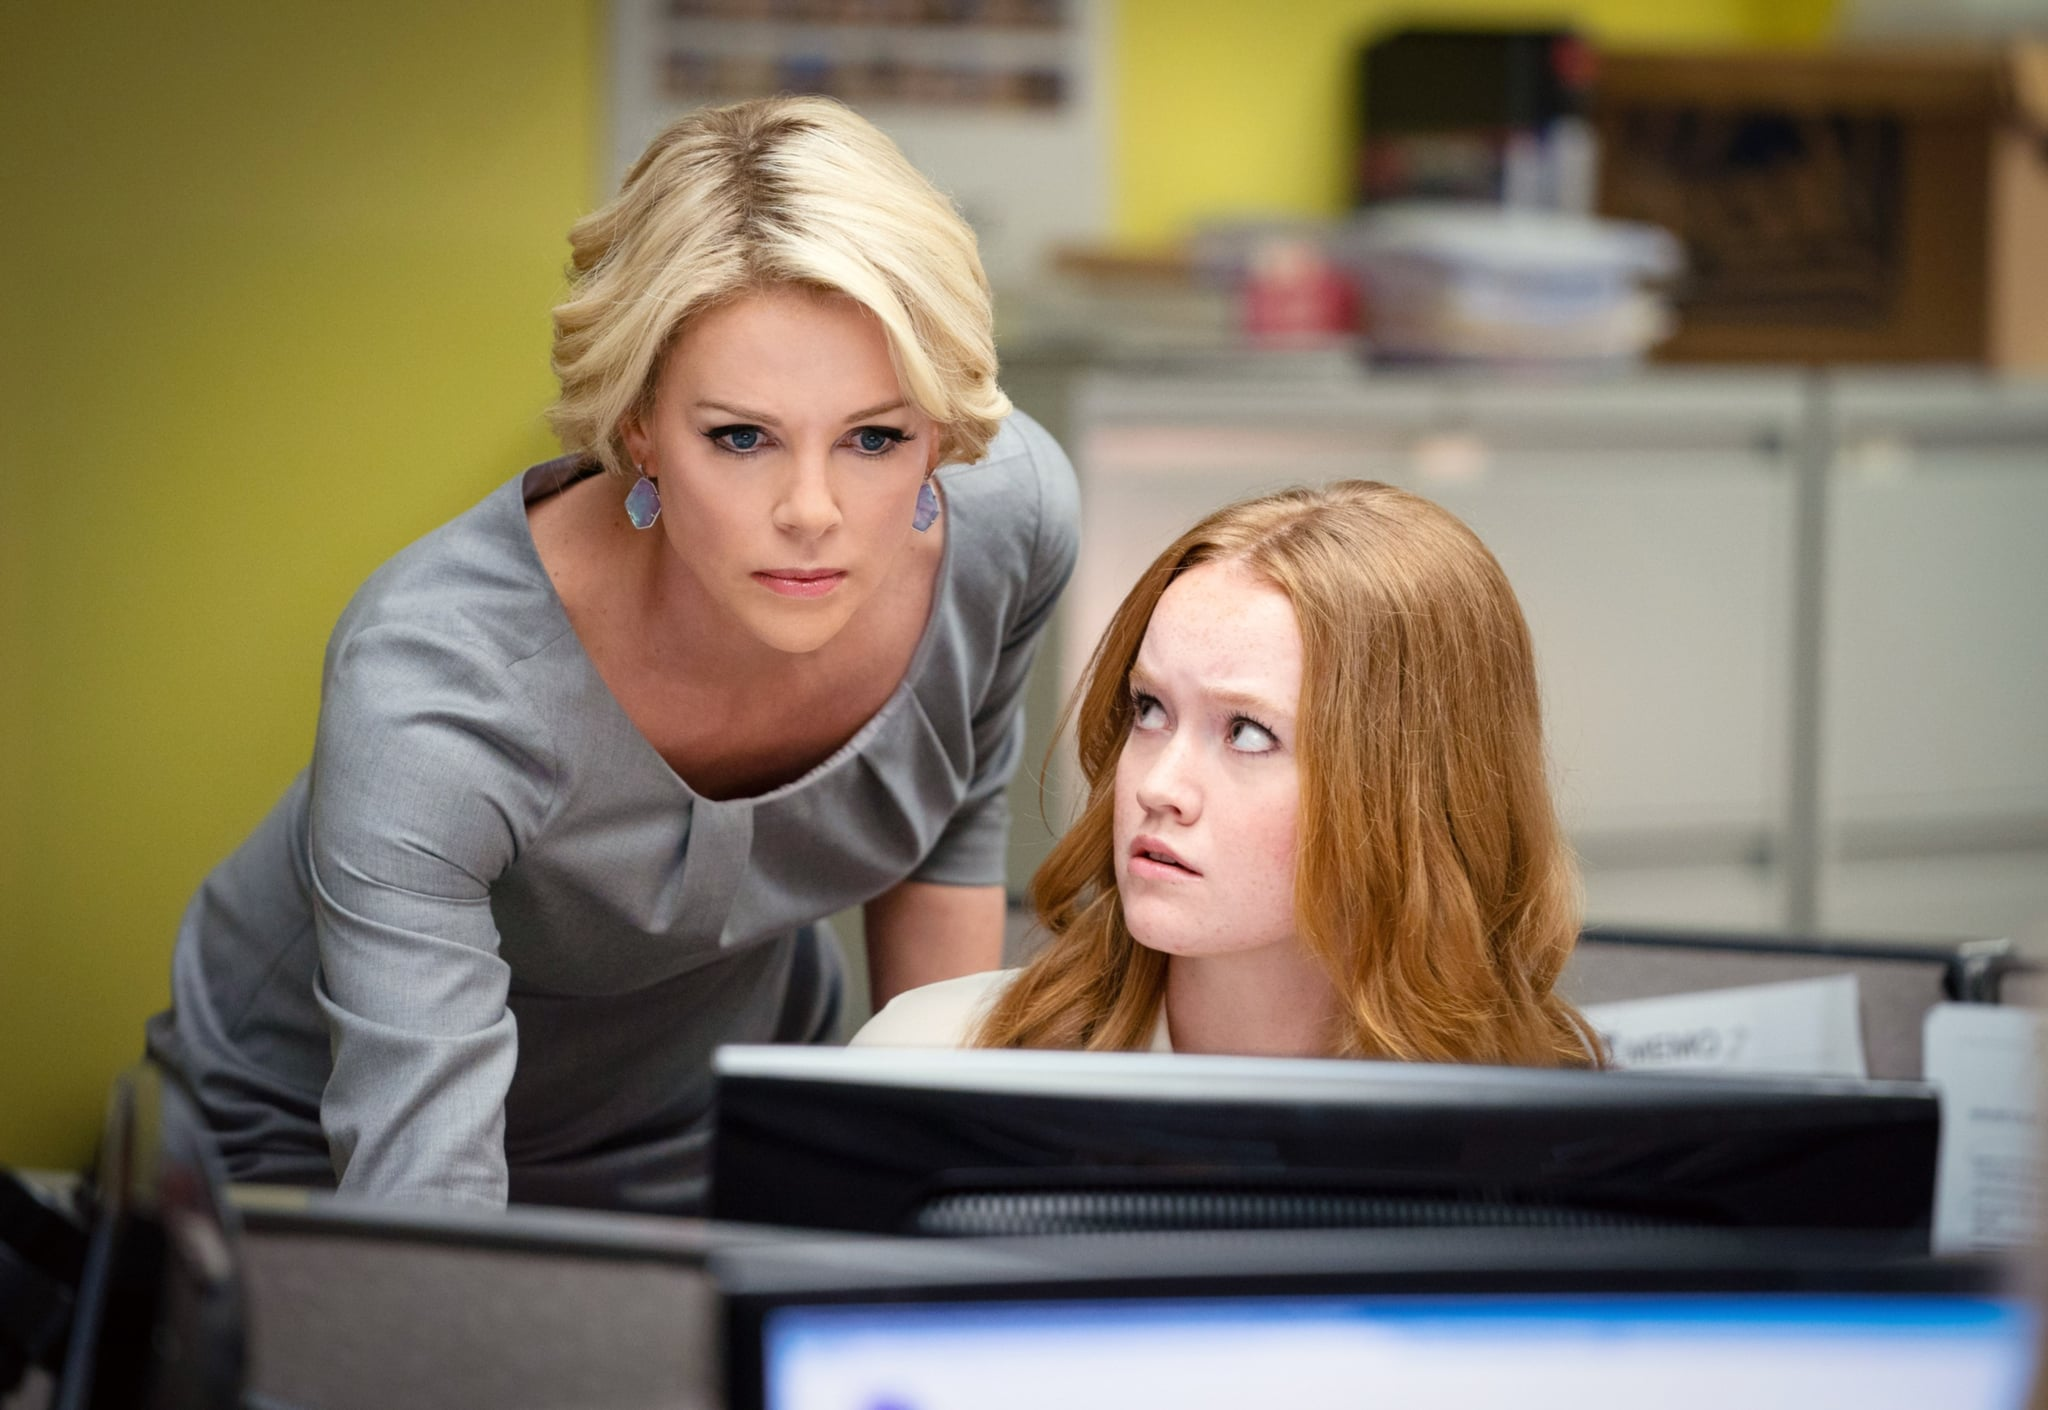 BOMBSHELL, from left: Charlize Theron as Megyn Kelly, Liv Hewson as Lily Balin, 2019. ph: Hilary Bronwyn Gayle /  Lionsgate / courtesy Everett Collection